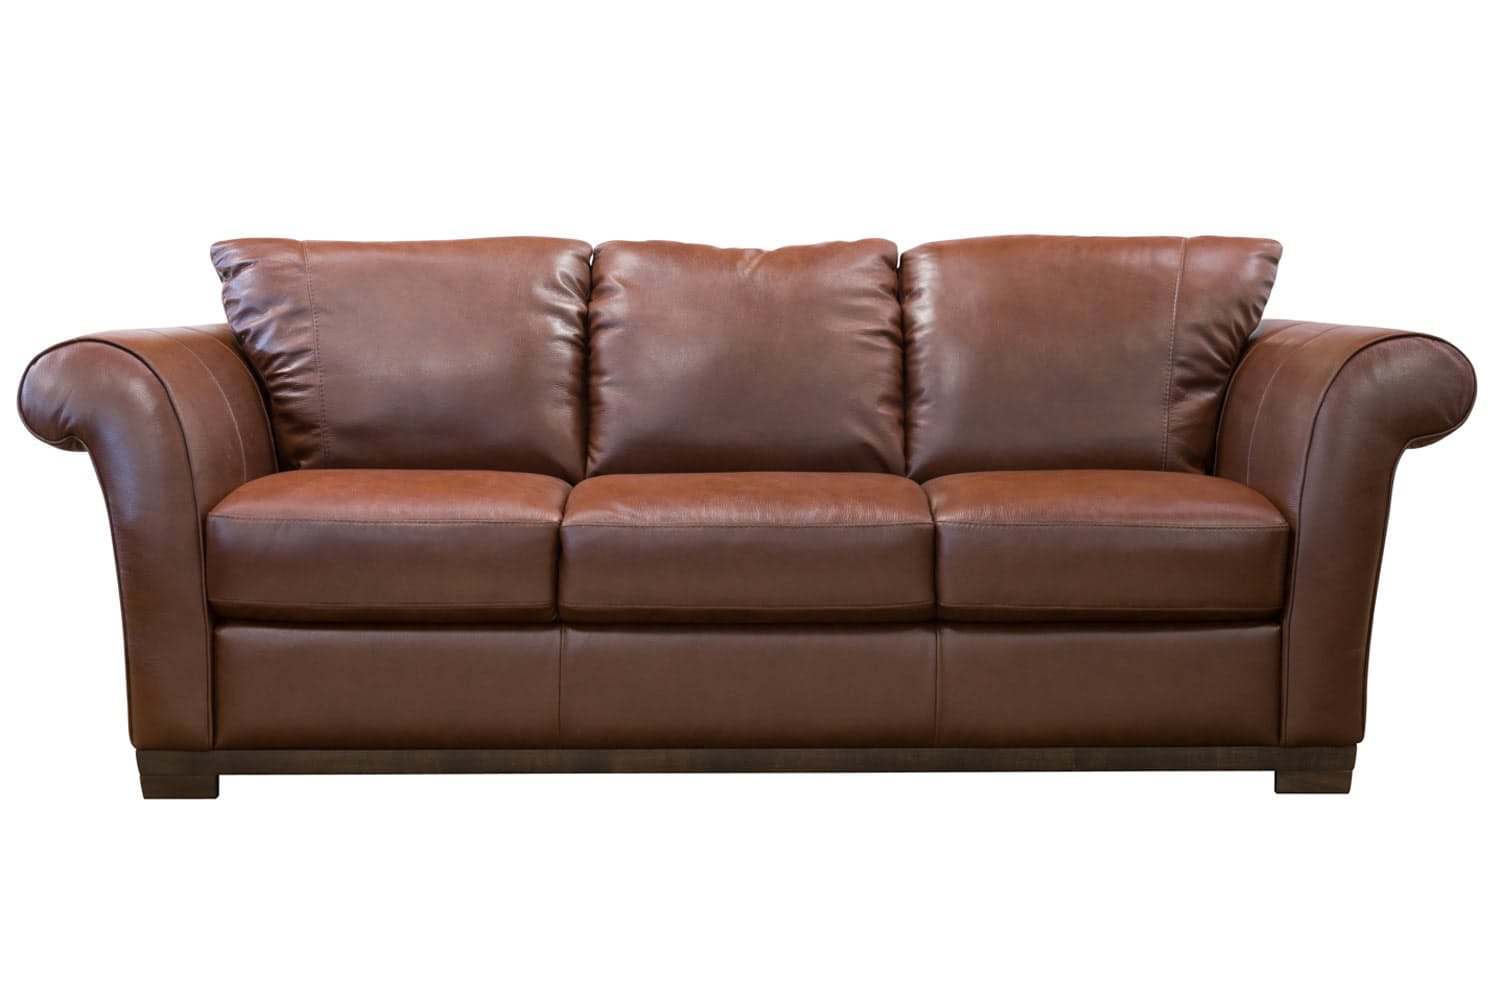 Mistral 3 Seater Sofa